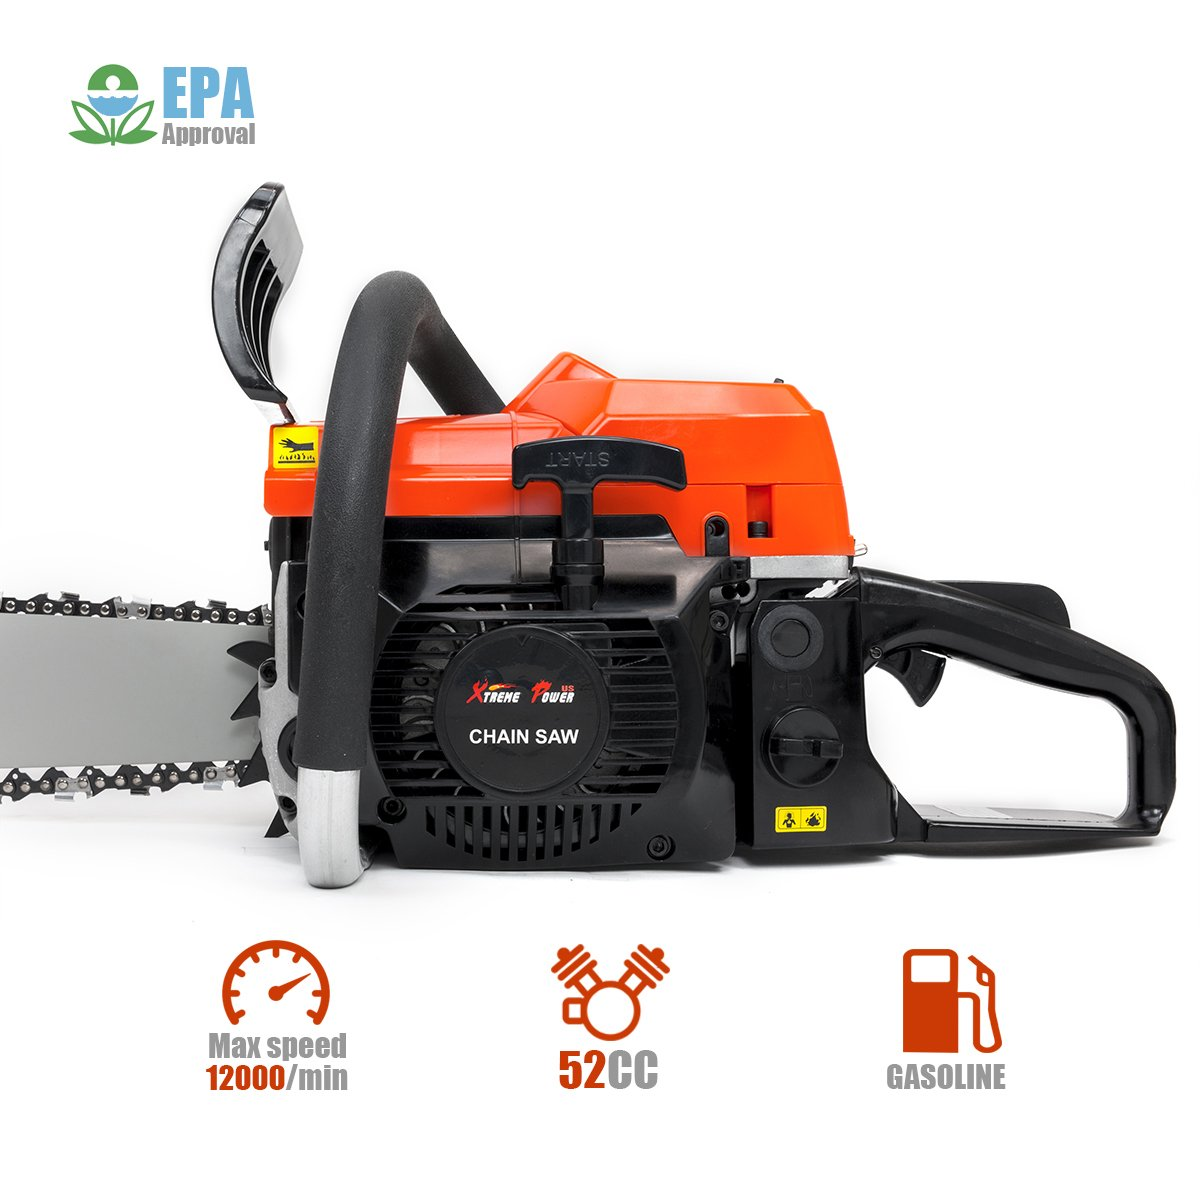 XtremepowerUS 52cc 2 Stroke Chainsaws product image 4